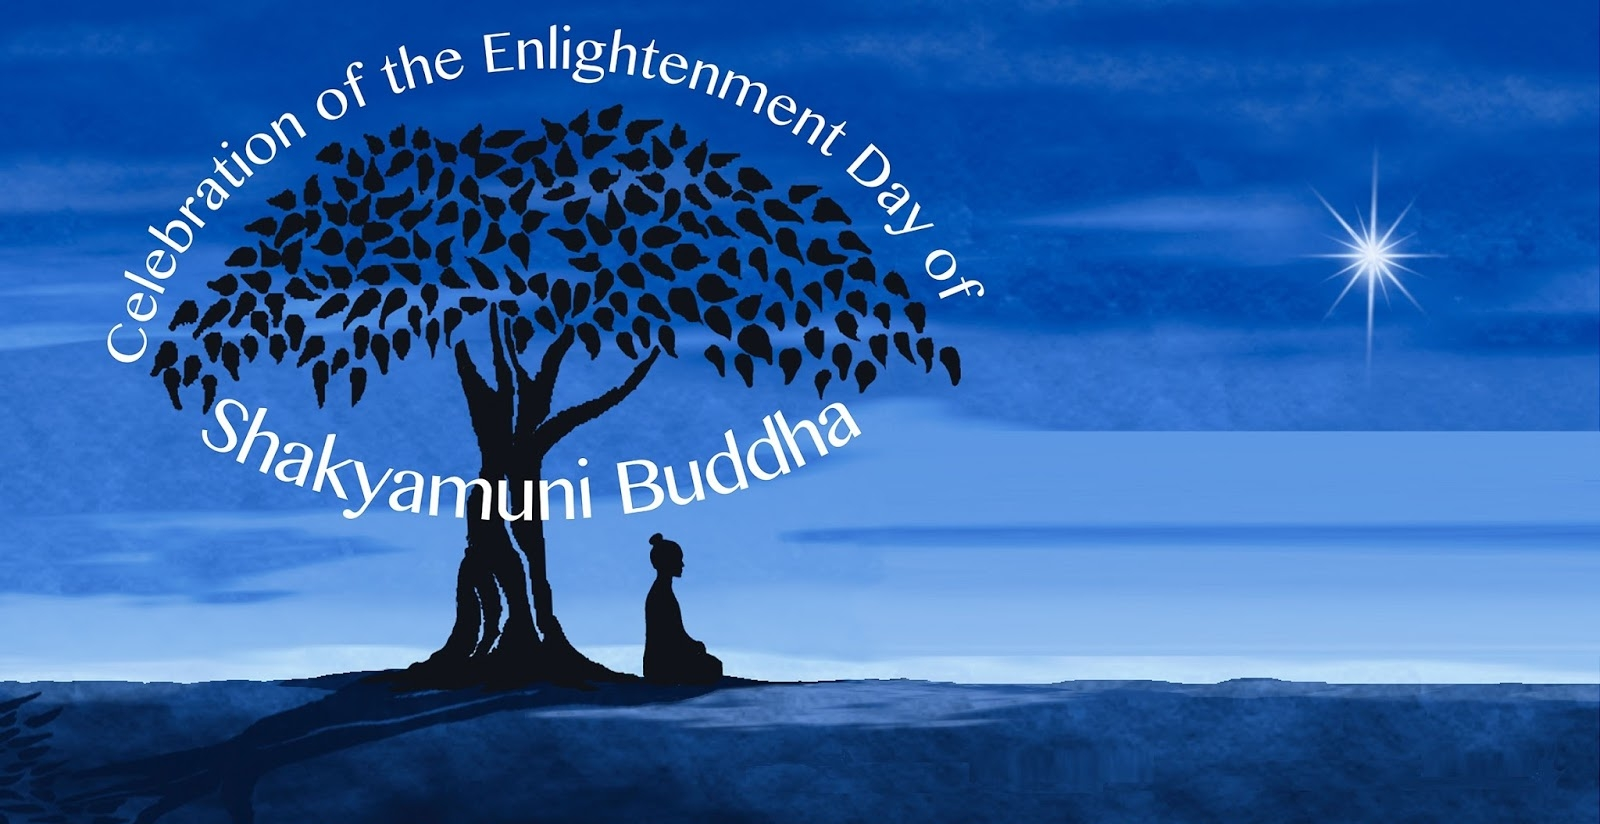 bodhi tree, enlightenment.jpg